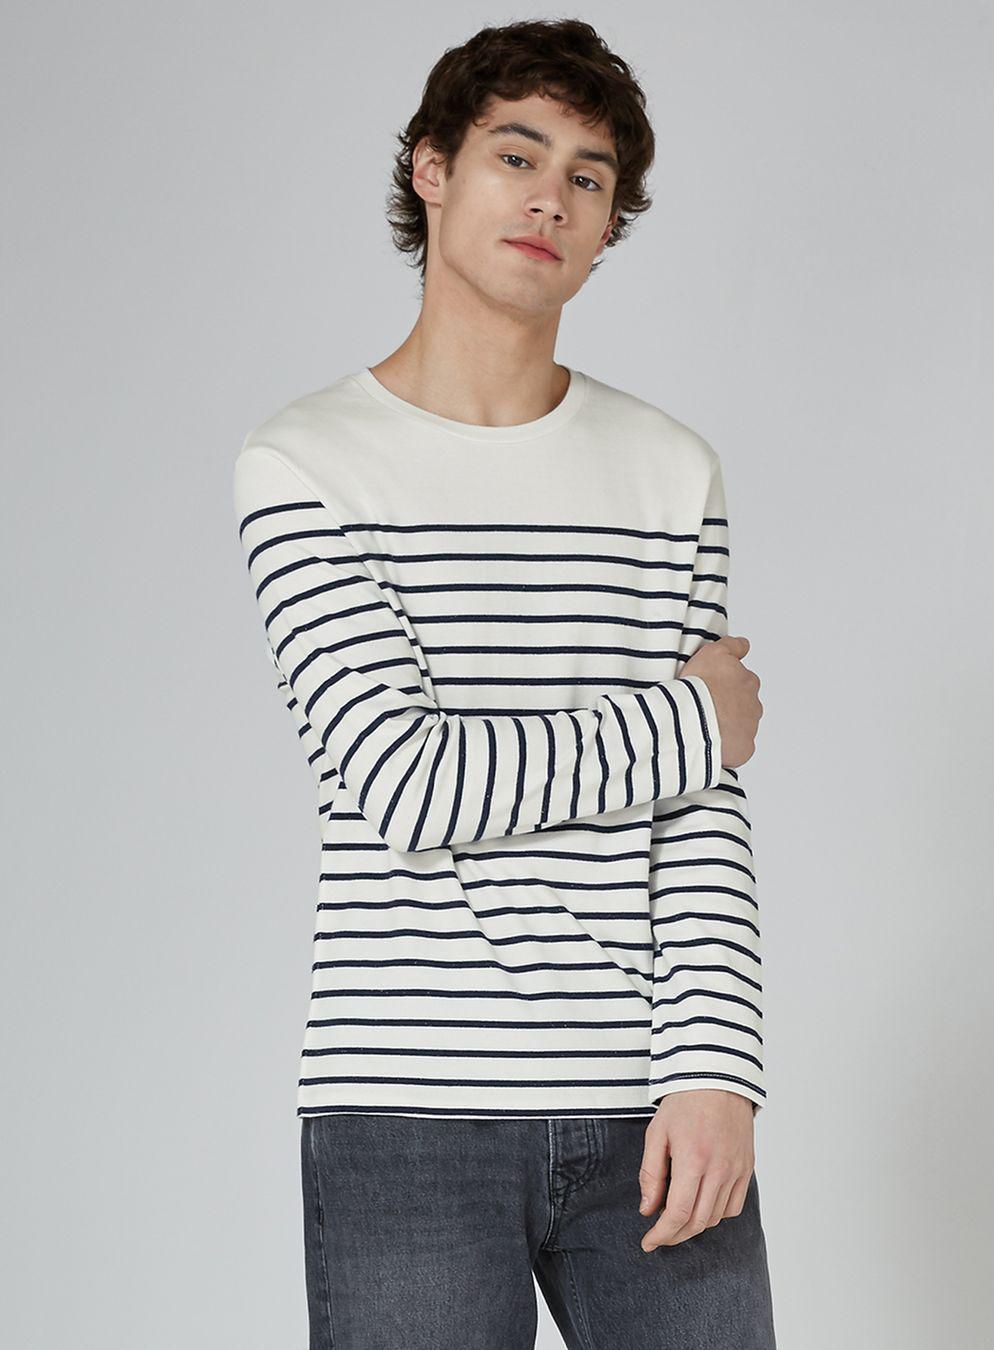 26c3e69d25 TOPMAN Levi's White And Blue Stripe 'mission' T-shirt in White for ...